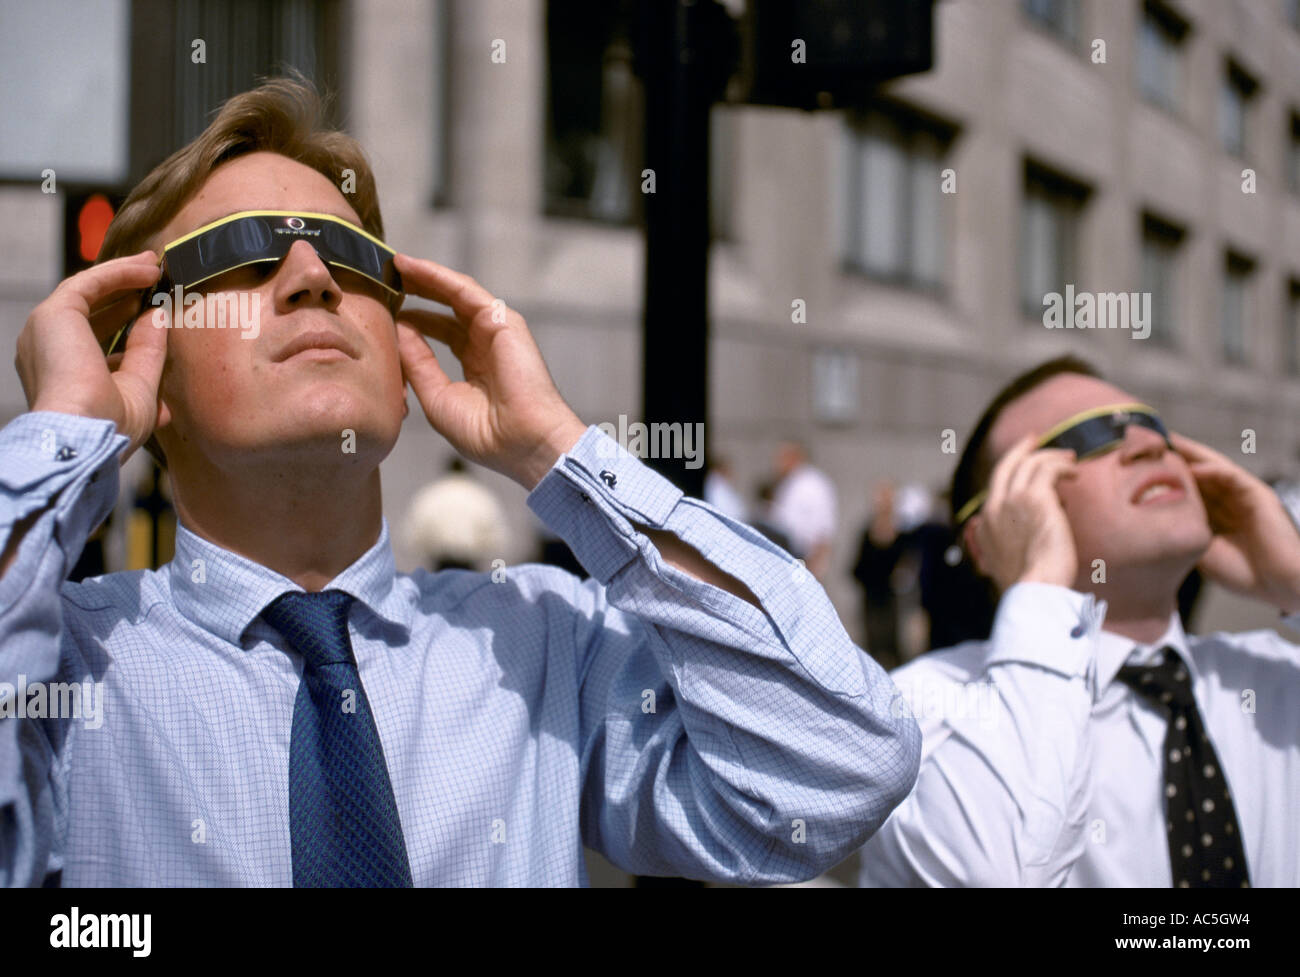 OFFICE WORKERS VIEW THE SOLAR ECLIPSE IN LONDON on 11th August 1999 - Stock Image